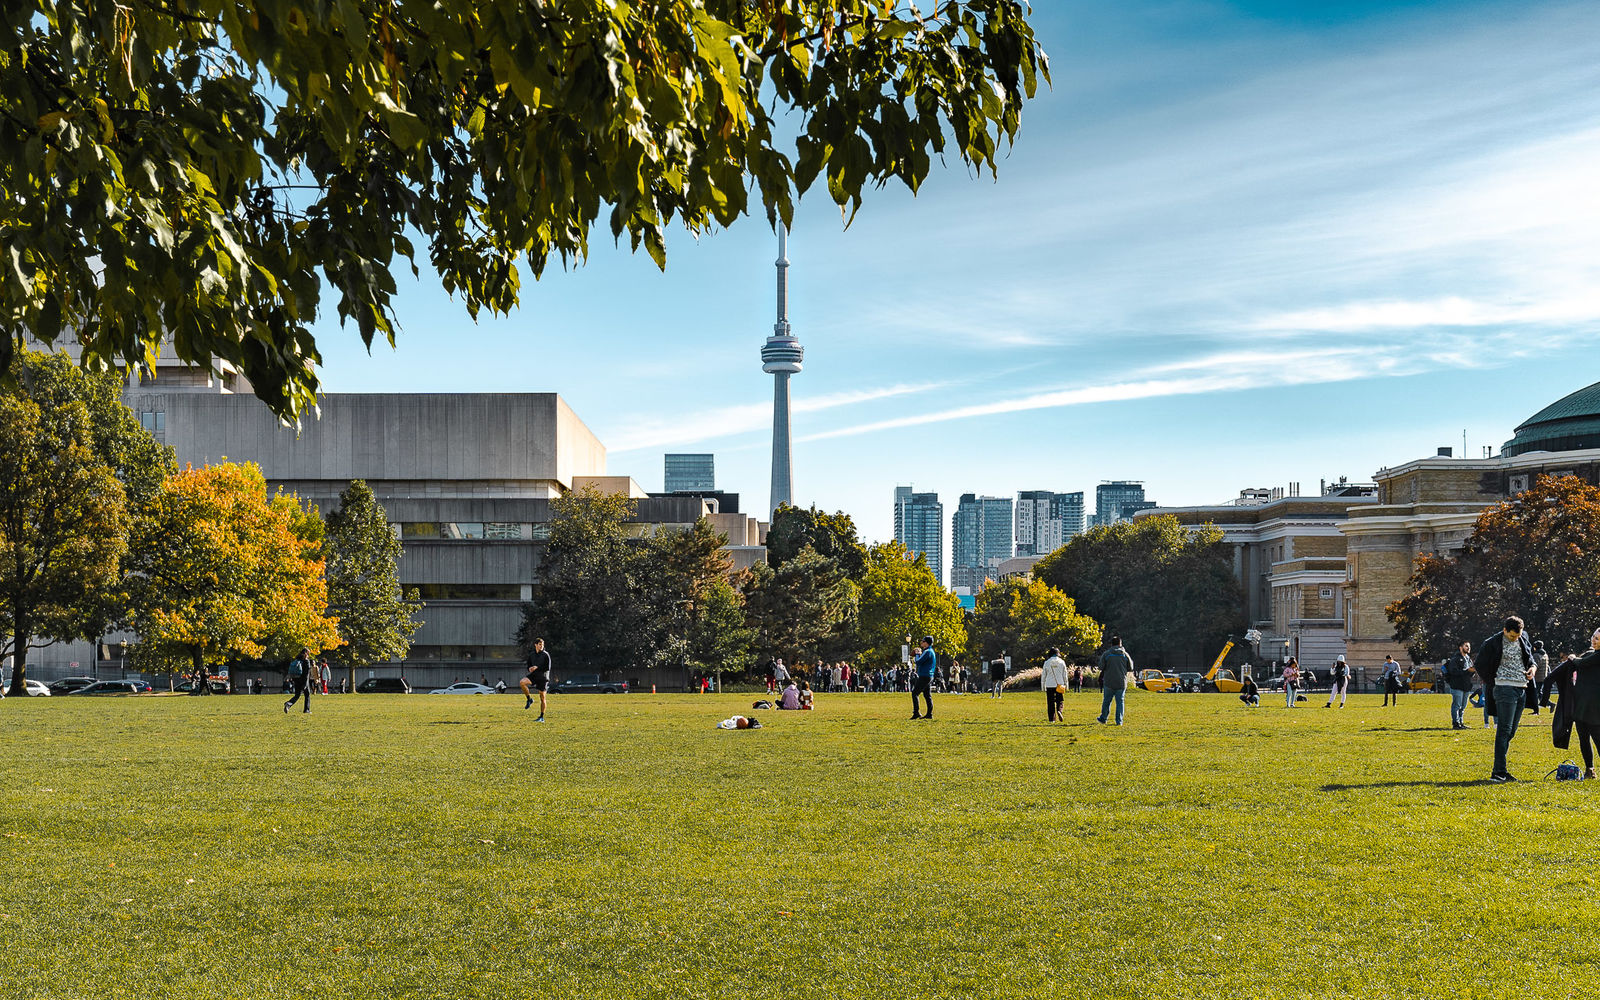 The CN Tower seen on a sunny day from the University of Toronto campus